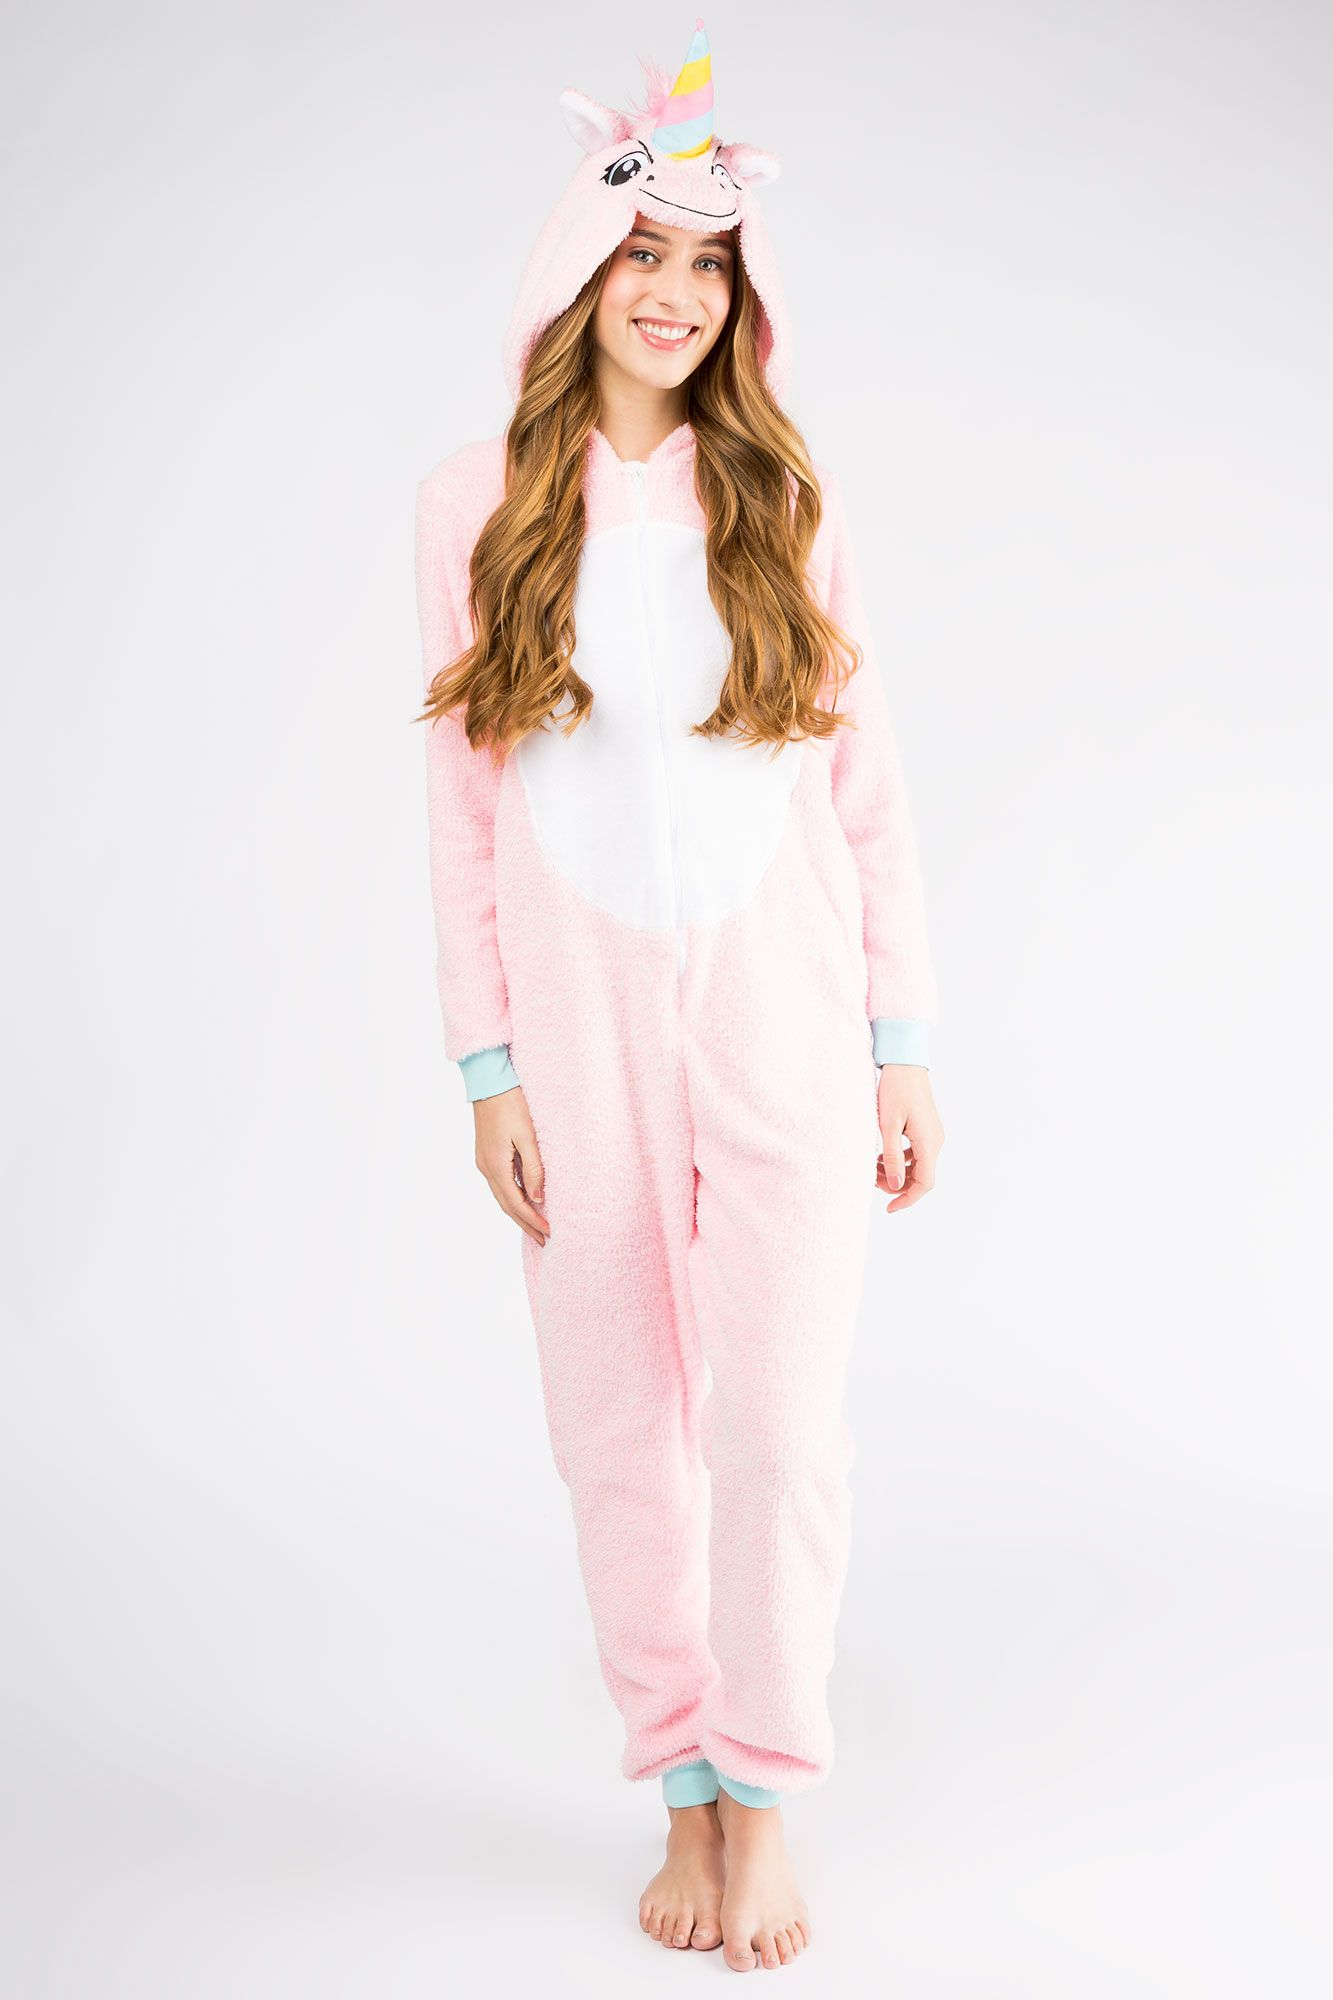 Plush Unicorn Onesie